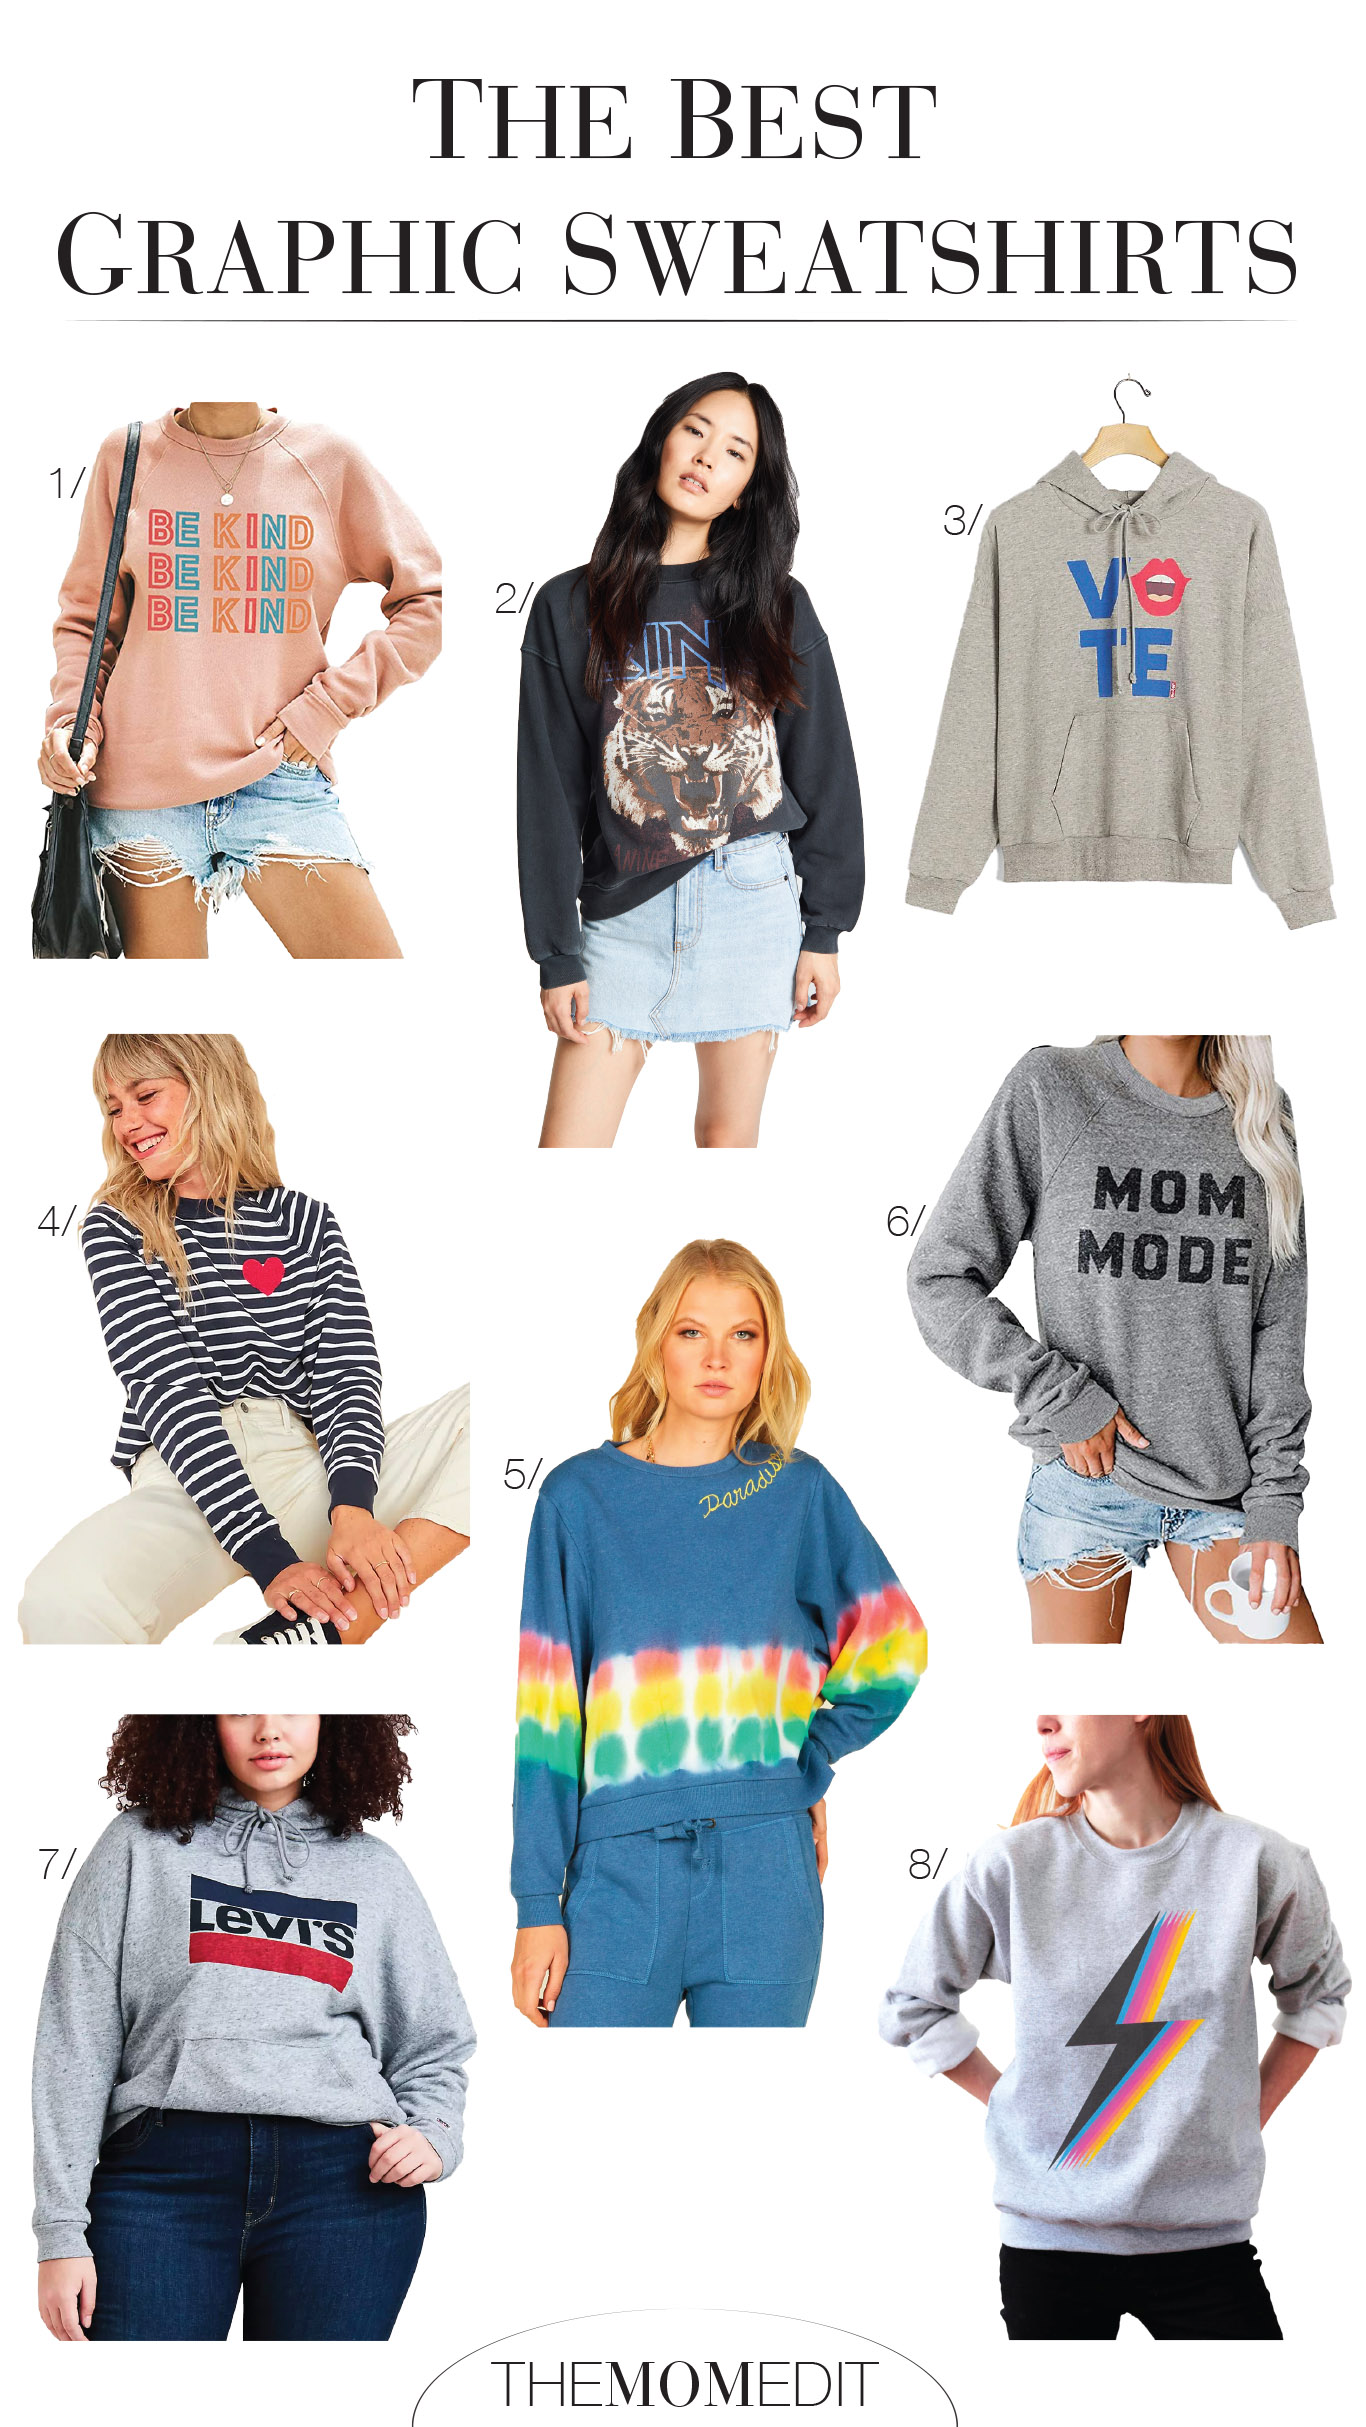 Graphic sweatshirts (AKA the graphic tee of winter) are a go-to for being comfy. We found 9 that are cute & fun -- from tie-dye to Vote hoodies.